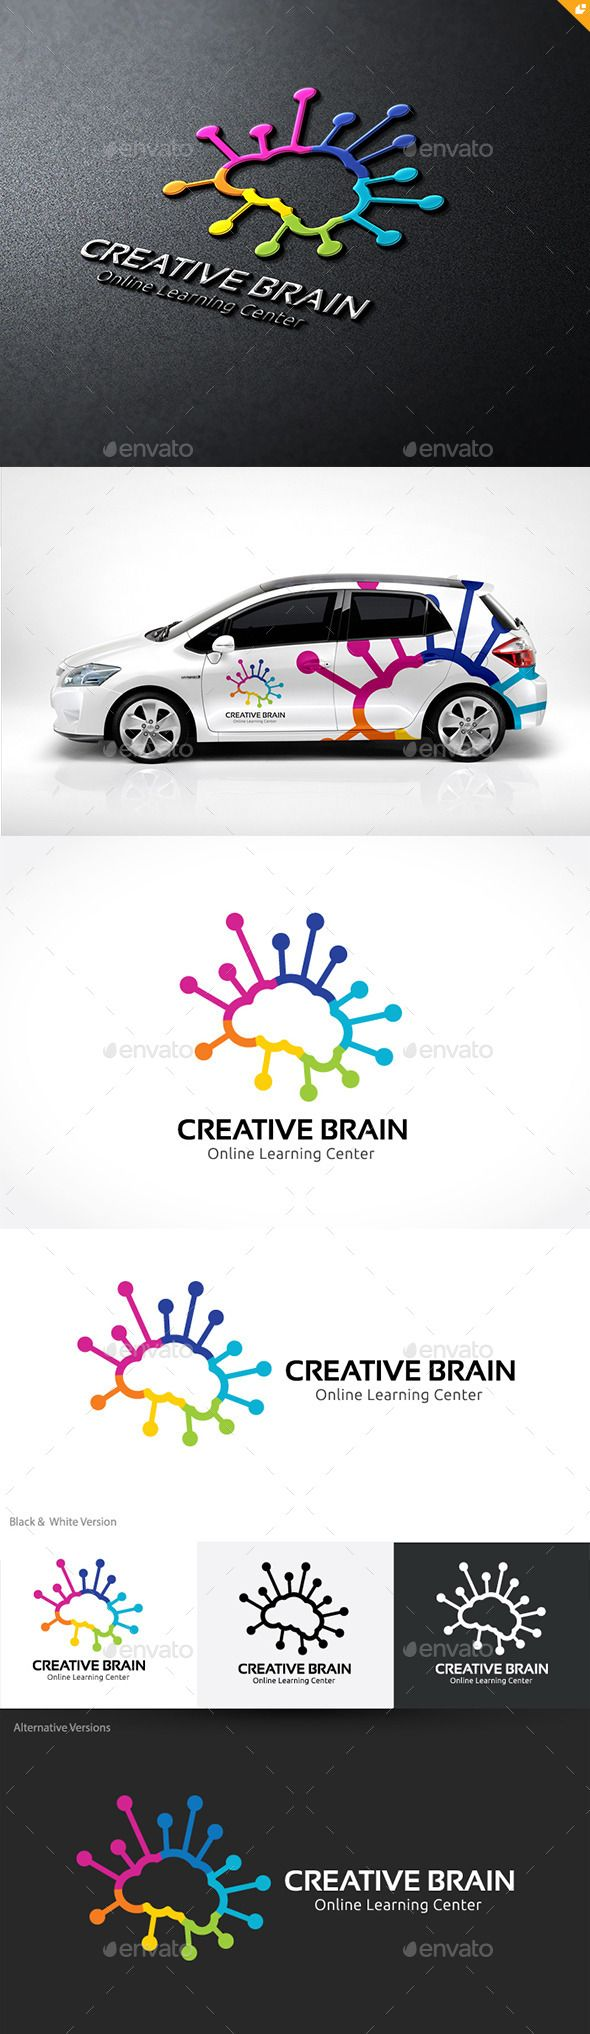 Creative Brain Logo Template PSD, Vector EPS, AI #logotype Download here: http://graphicriver.net/item/creative-brain/10241849?ref=ksioks